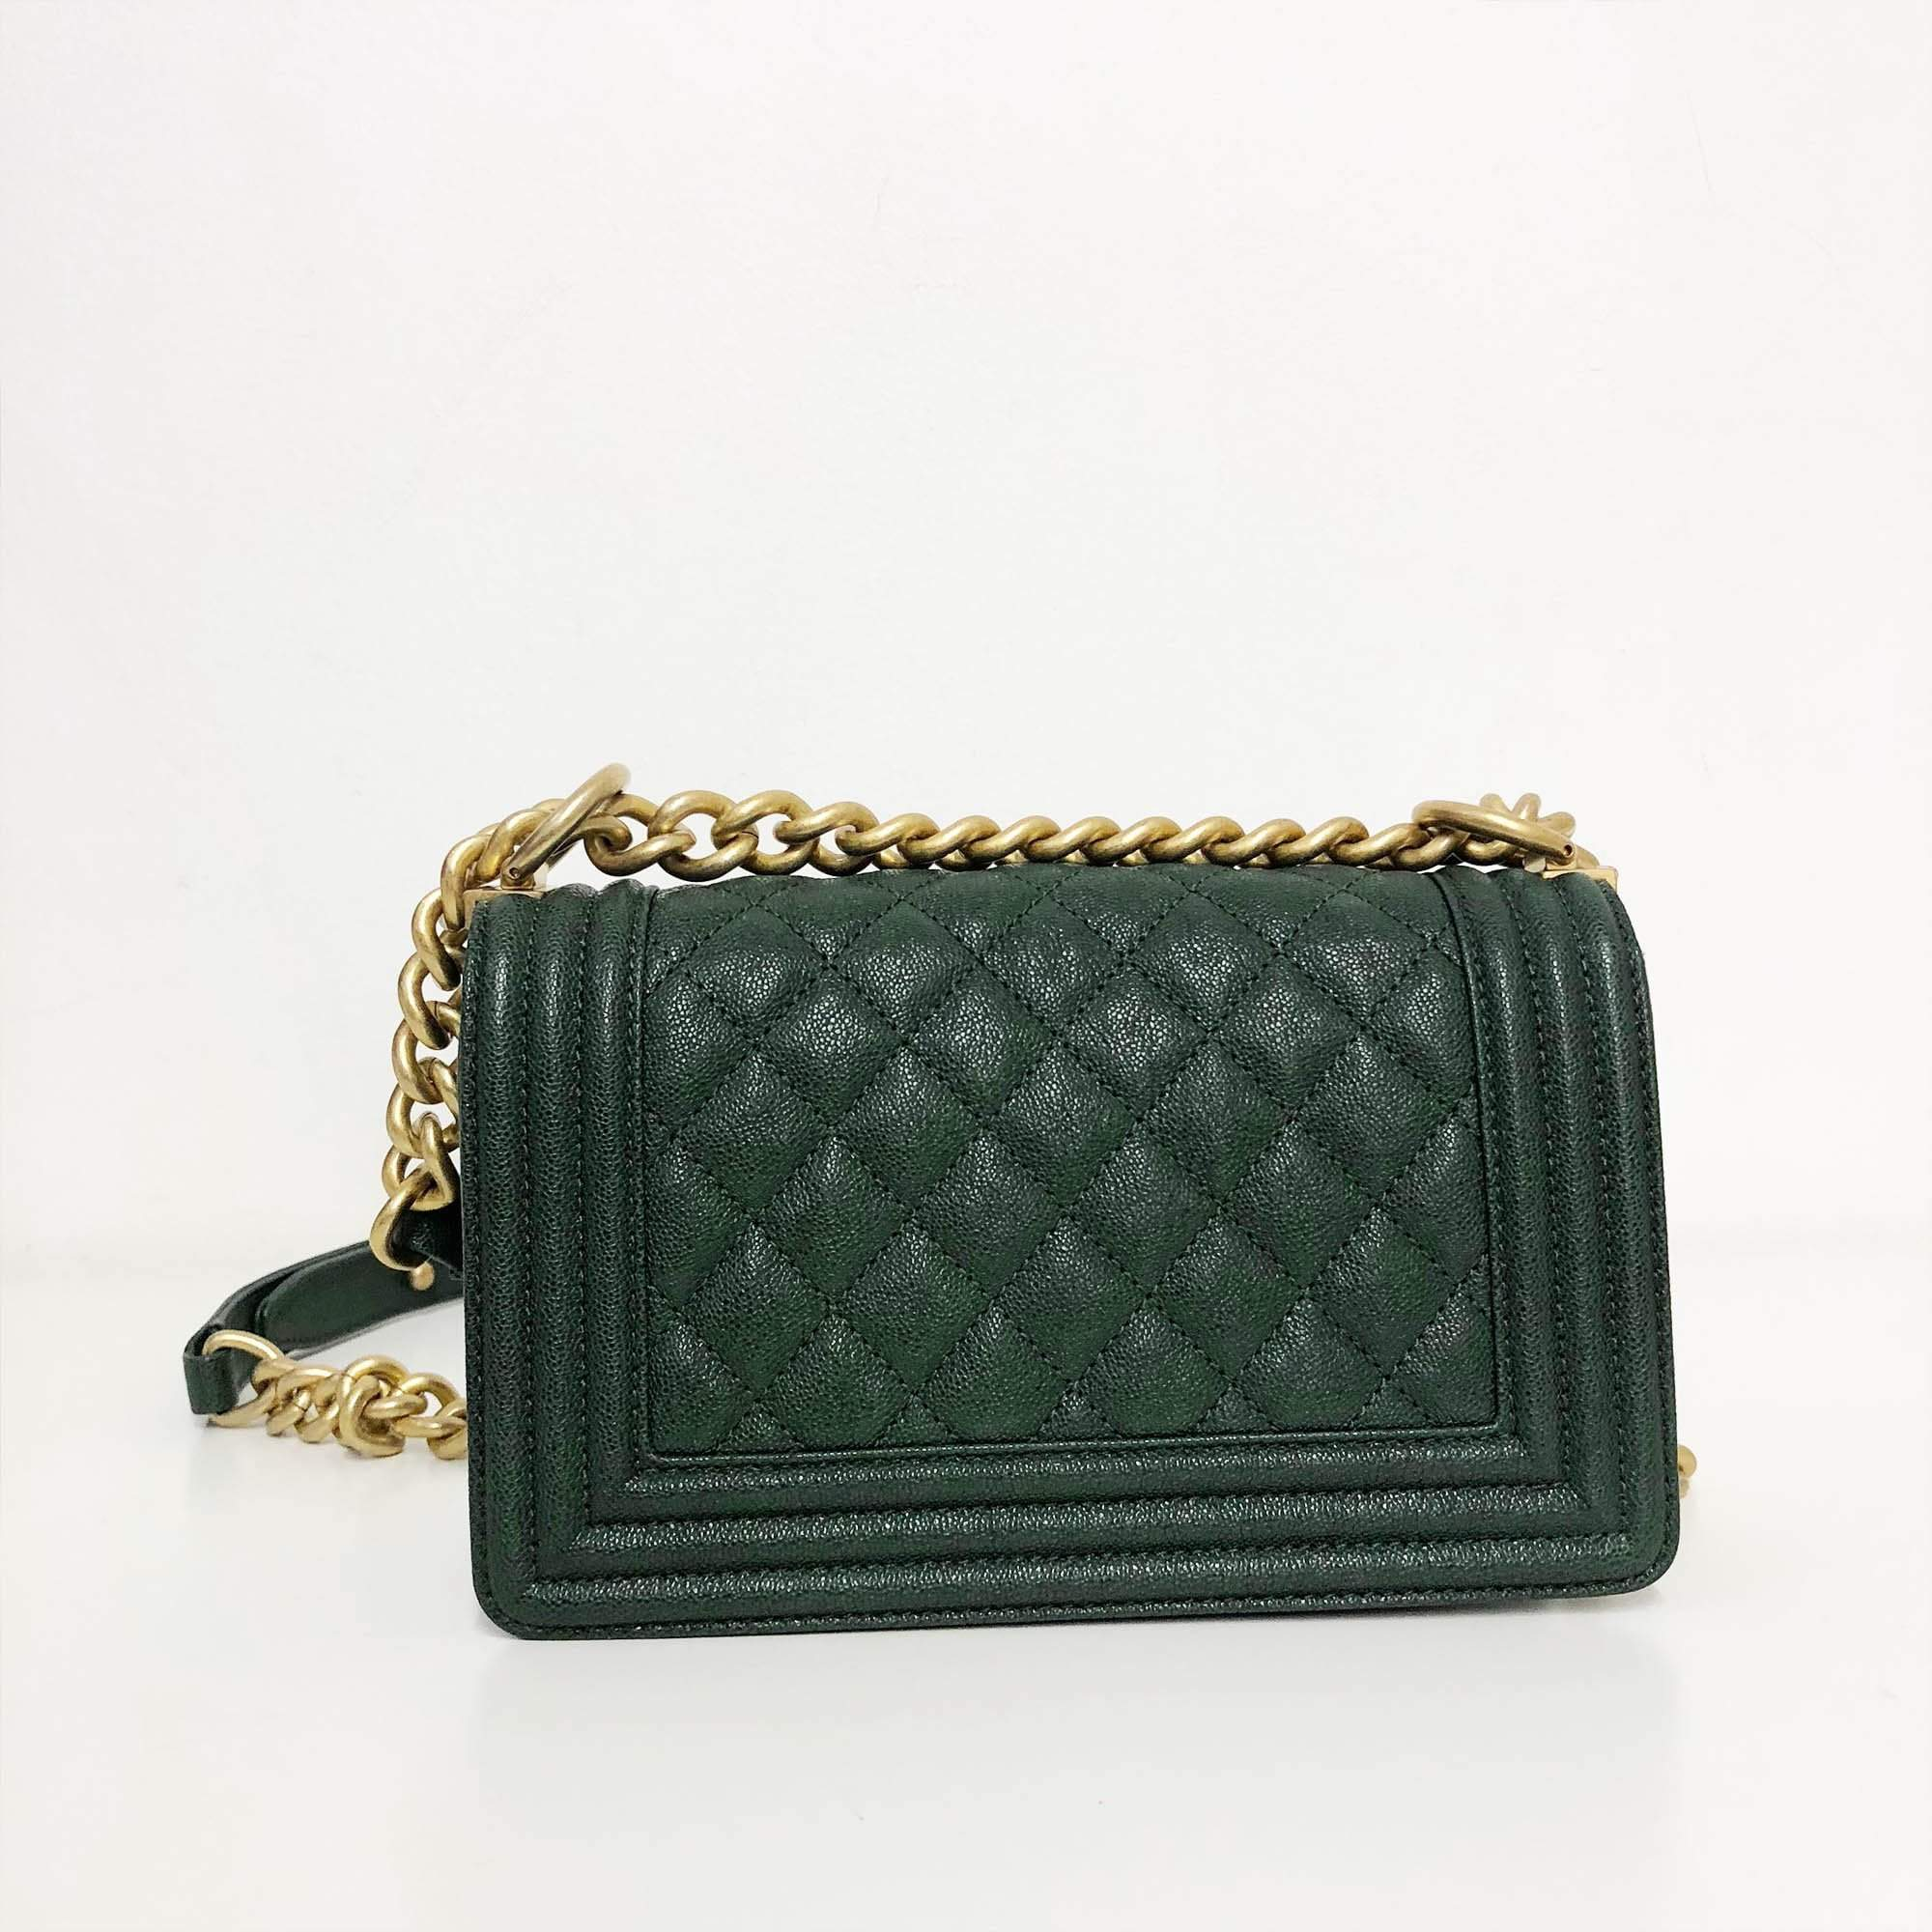 Chanel Green Quilted Caviar GHW Small Le Boy Bag